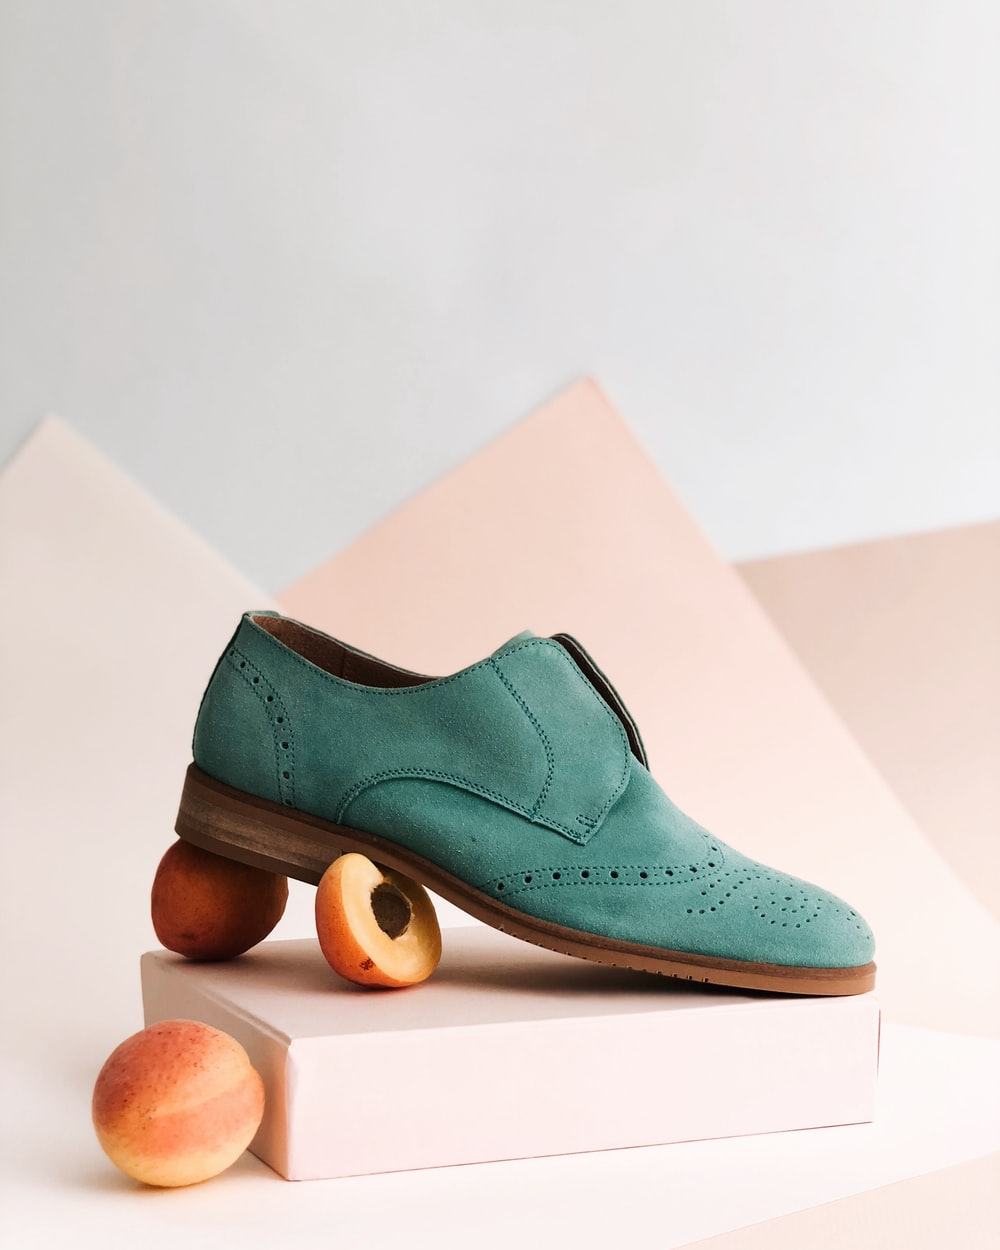 unpaired green leather shoe on top of white box